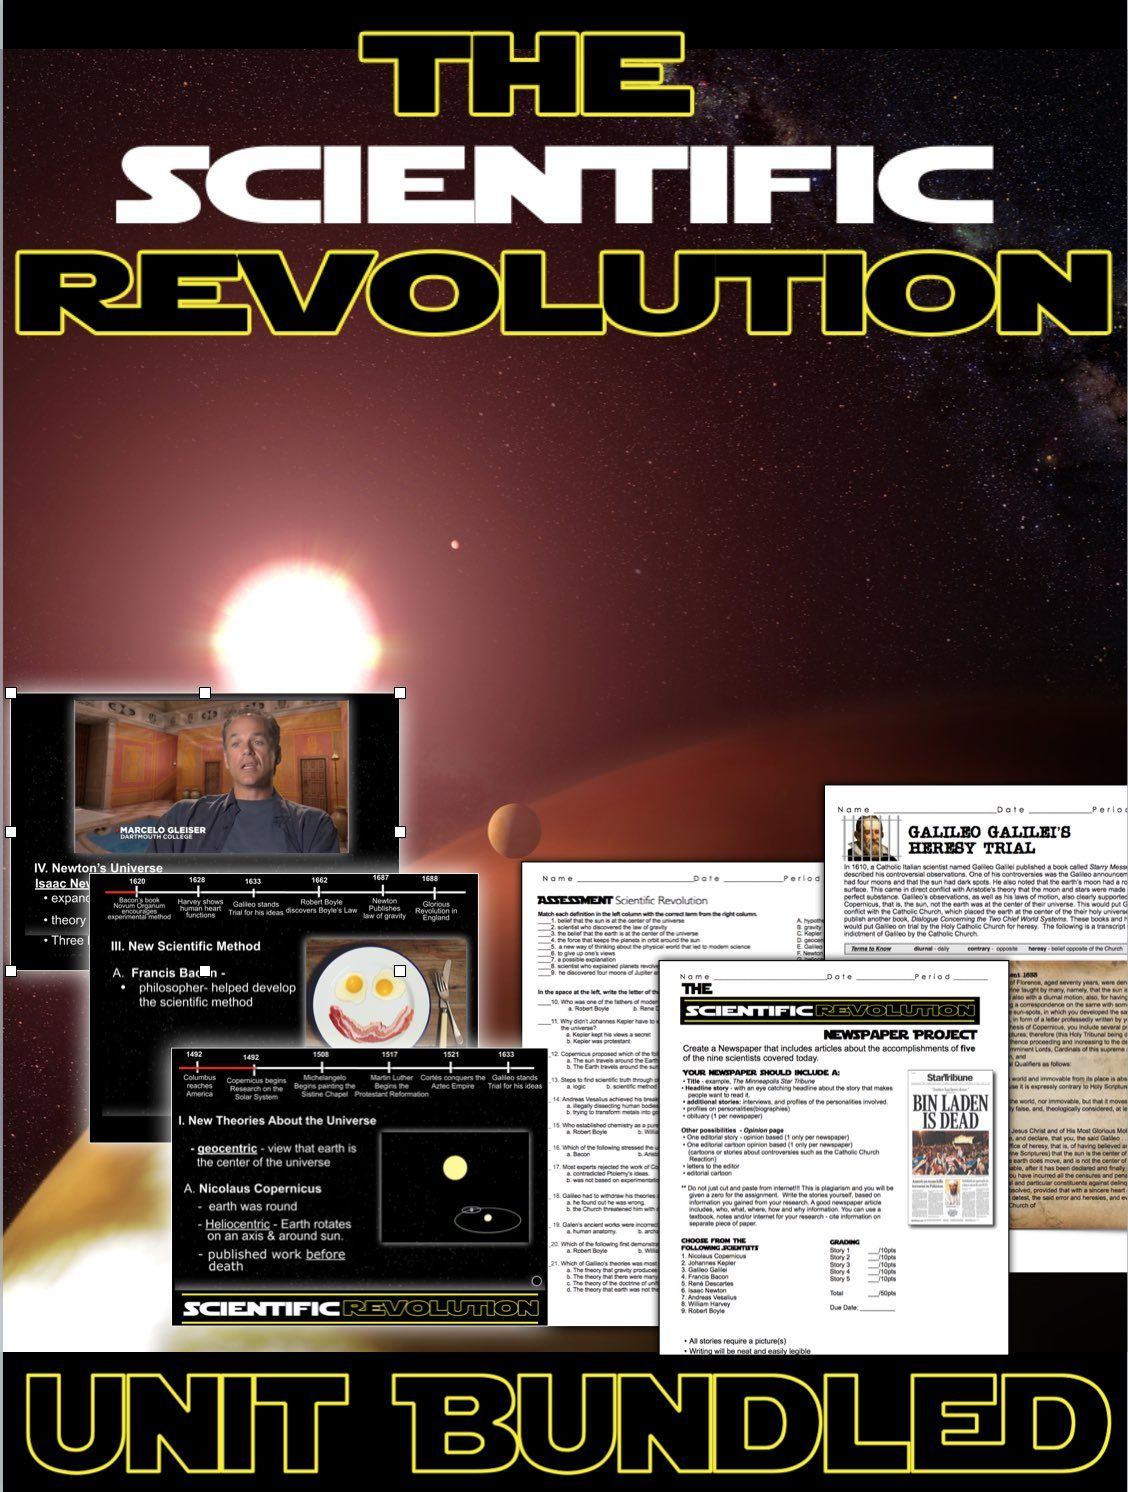 Scientific Revolution Unit Ppts Worksheets Project